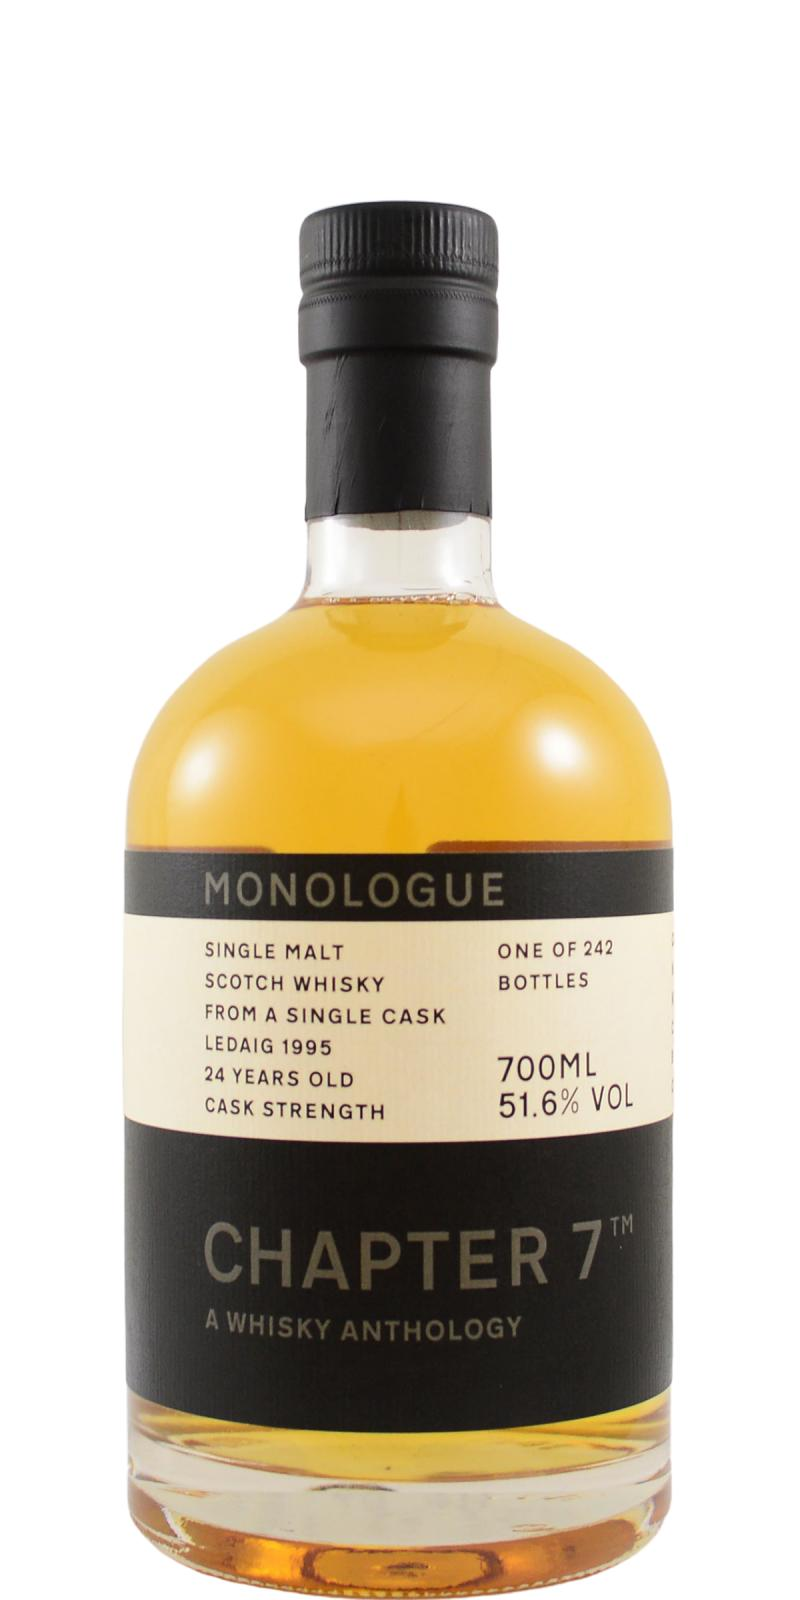 The Dramble reviews Ledaig 1995 24 year old Chapter 7 Monologue